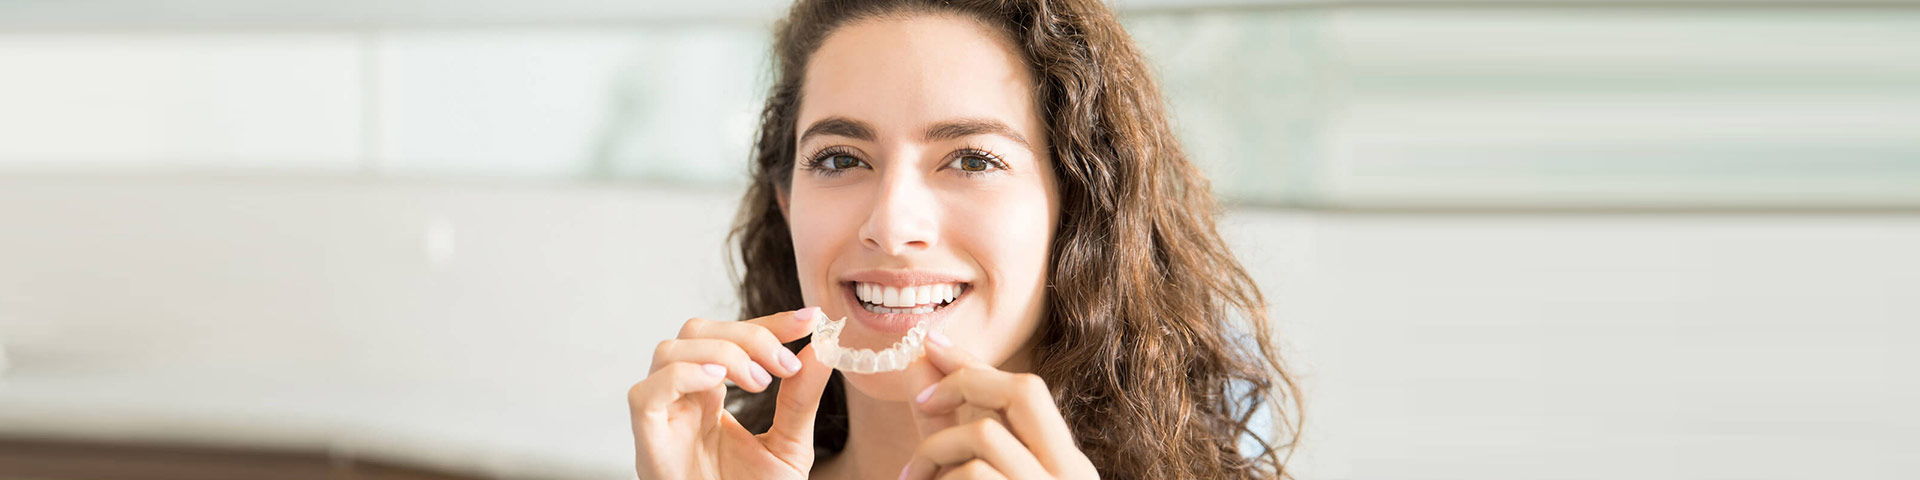 Beautiful girl with Invisalign® treatment